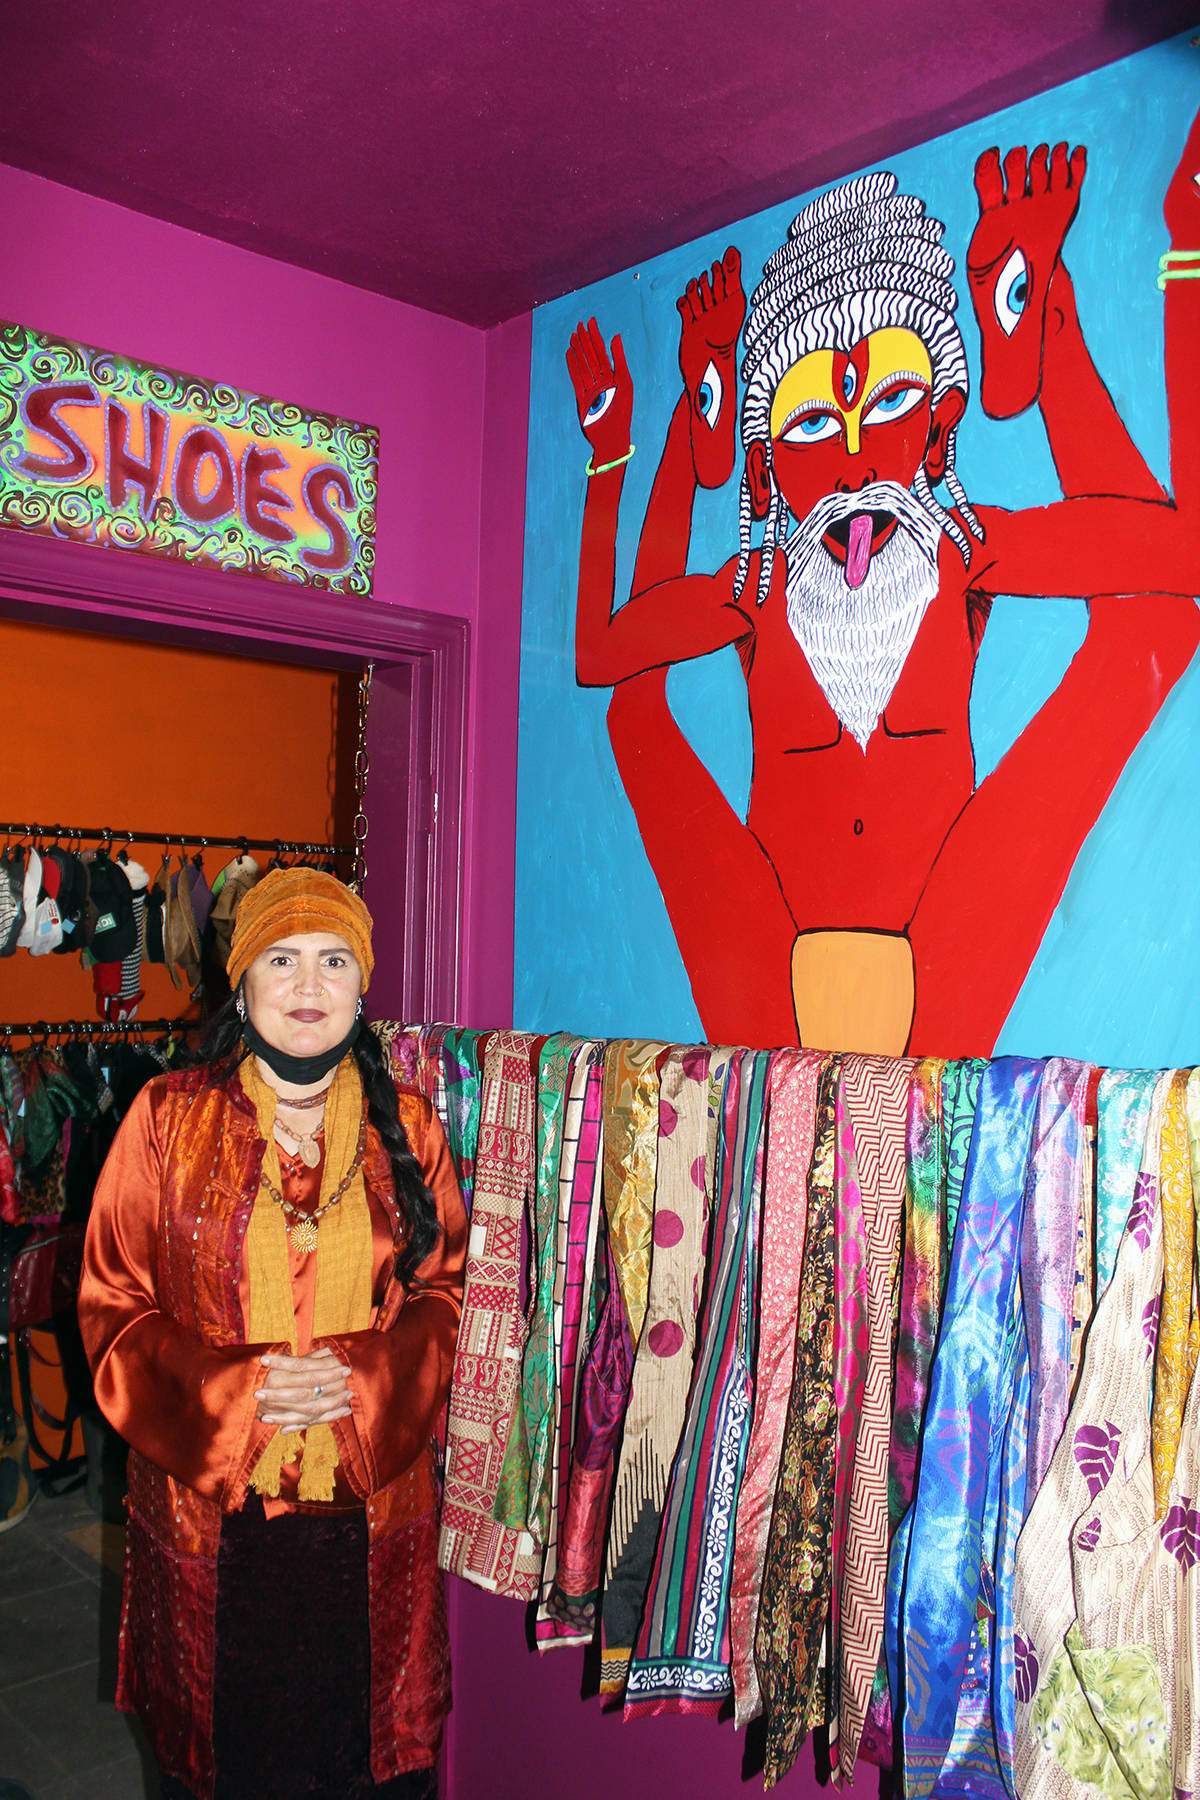 Colourful art on the walls is matched by colourful scarves in Morgan McLeod's Govinda's Thrift Store. (Photo by Don Bodger)